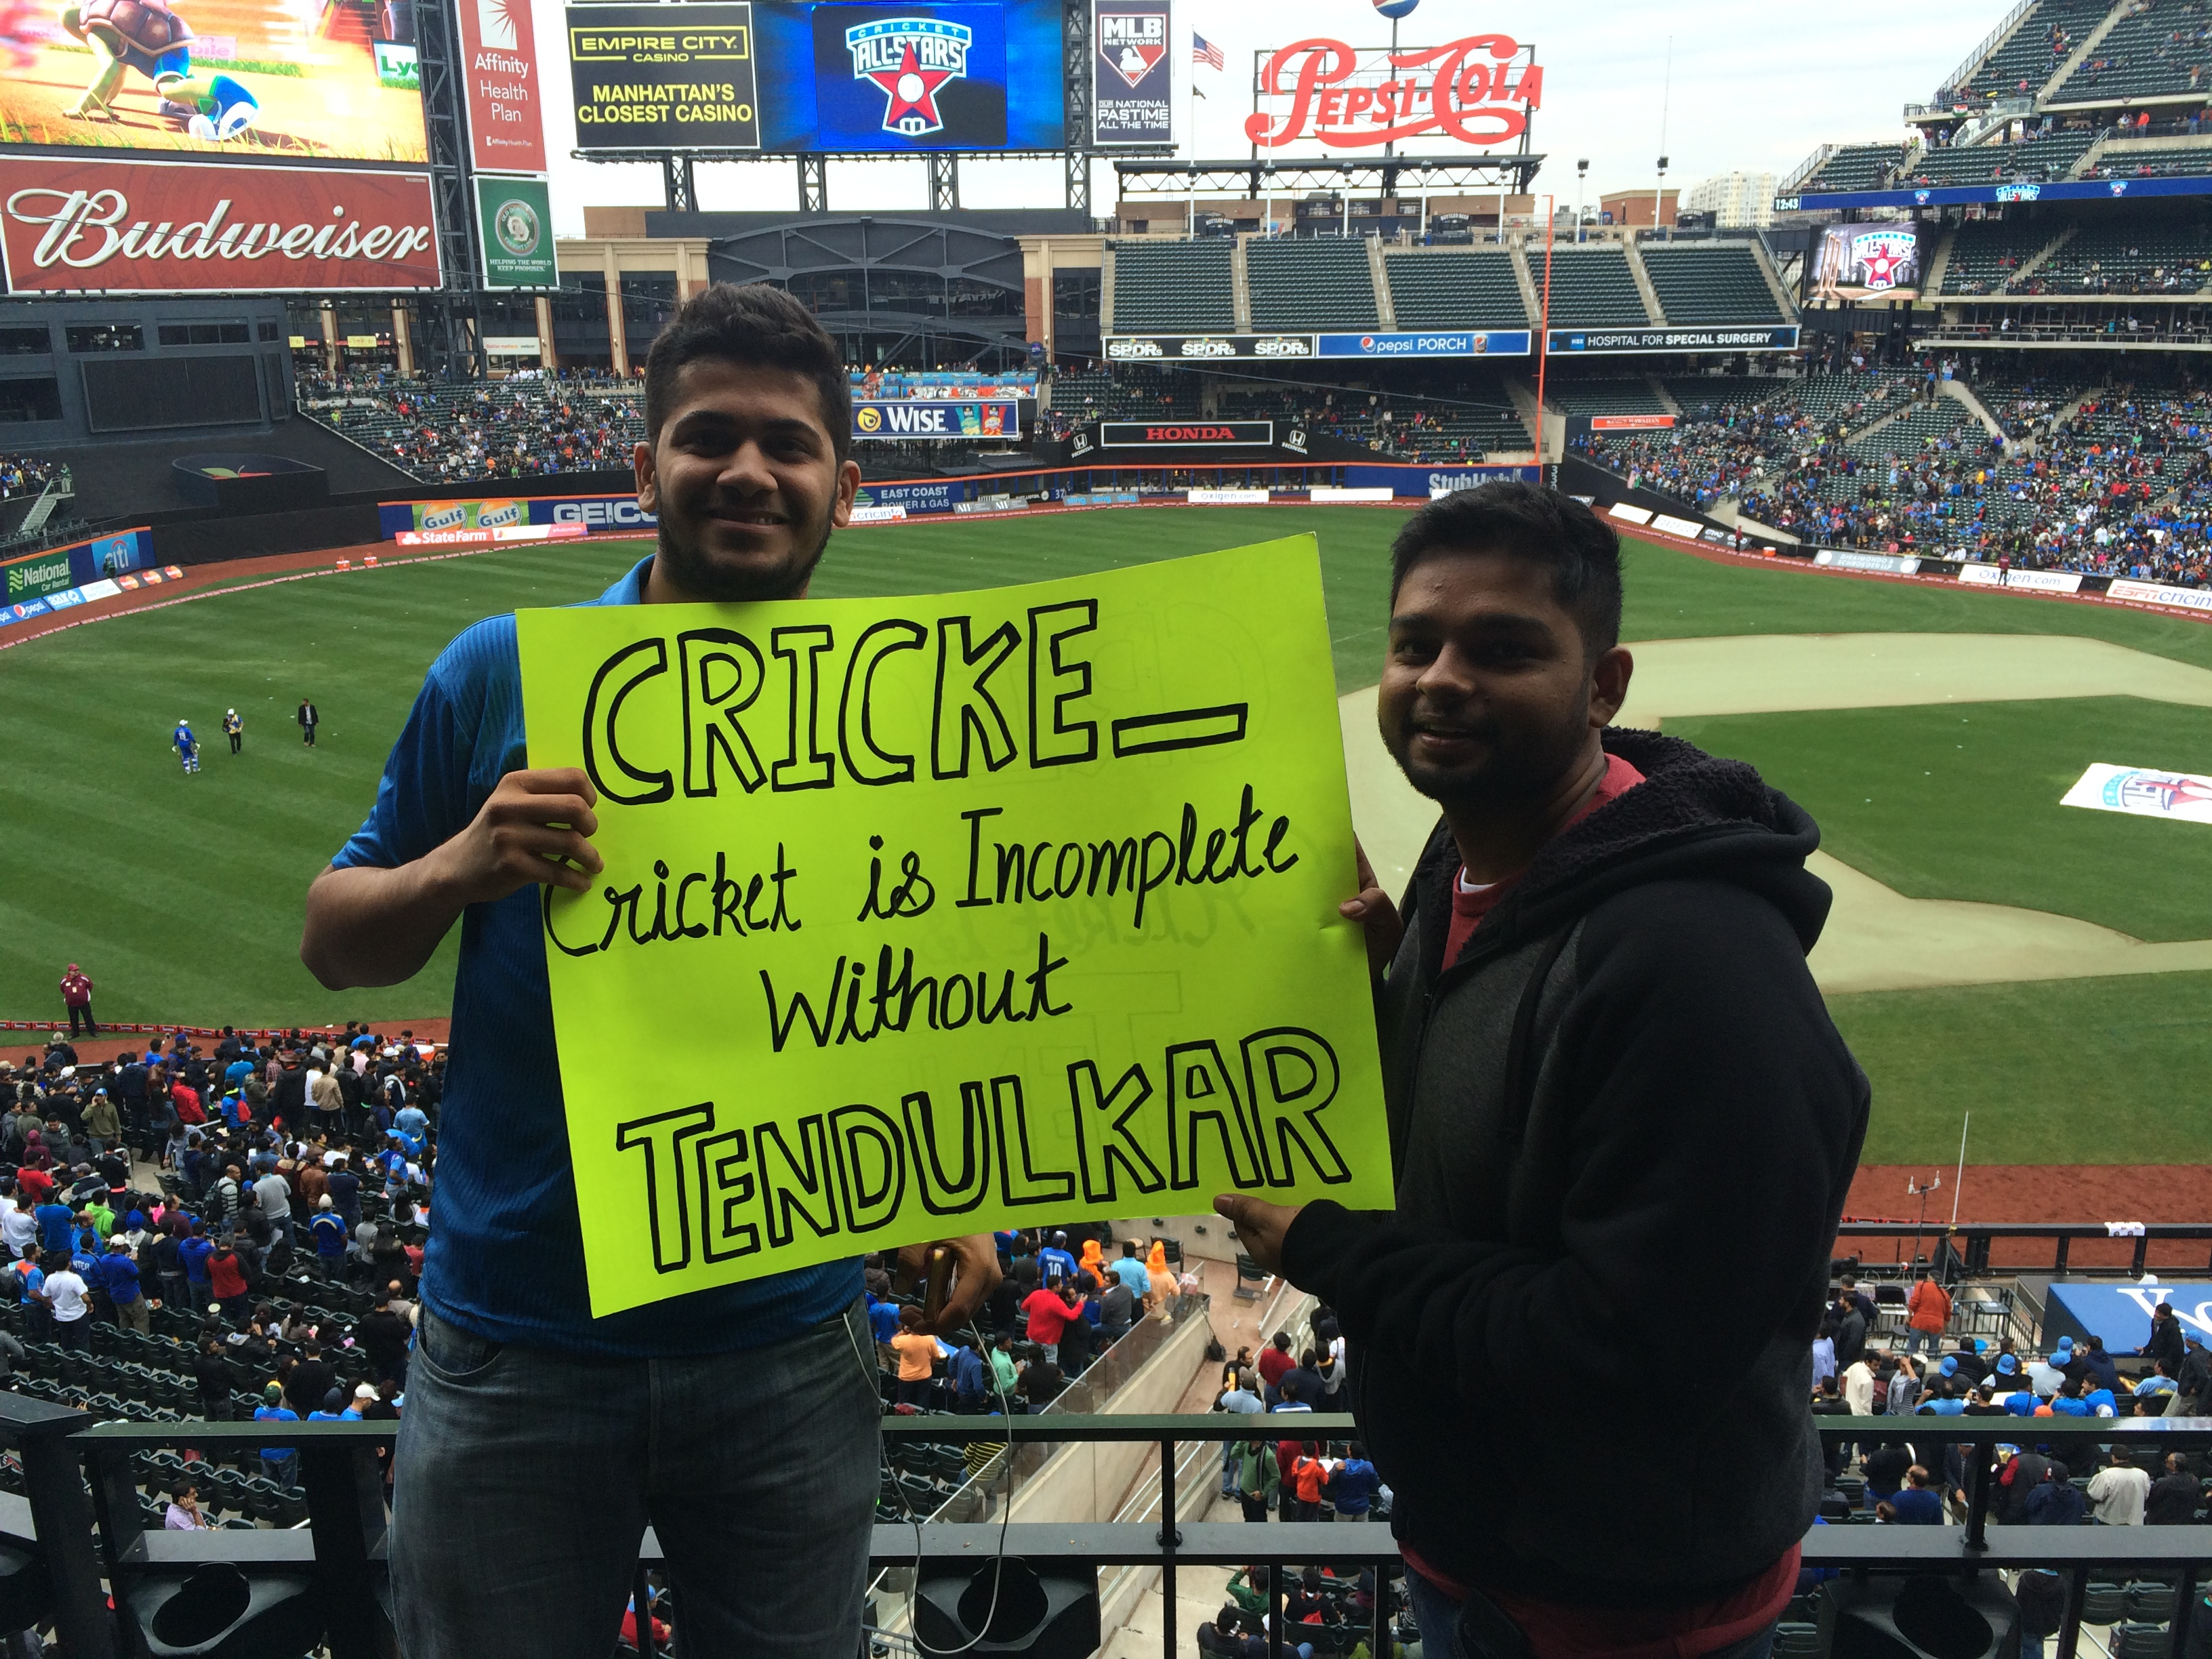 Cricket icon Sachin Tendulkar's fans holding a sign at Citi Field before the start of All Stars game